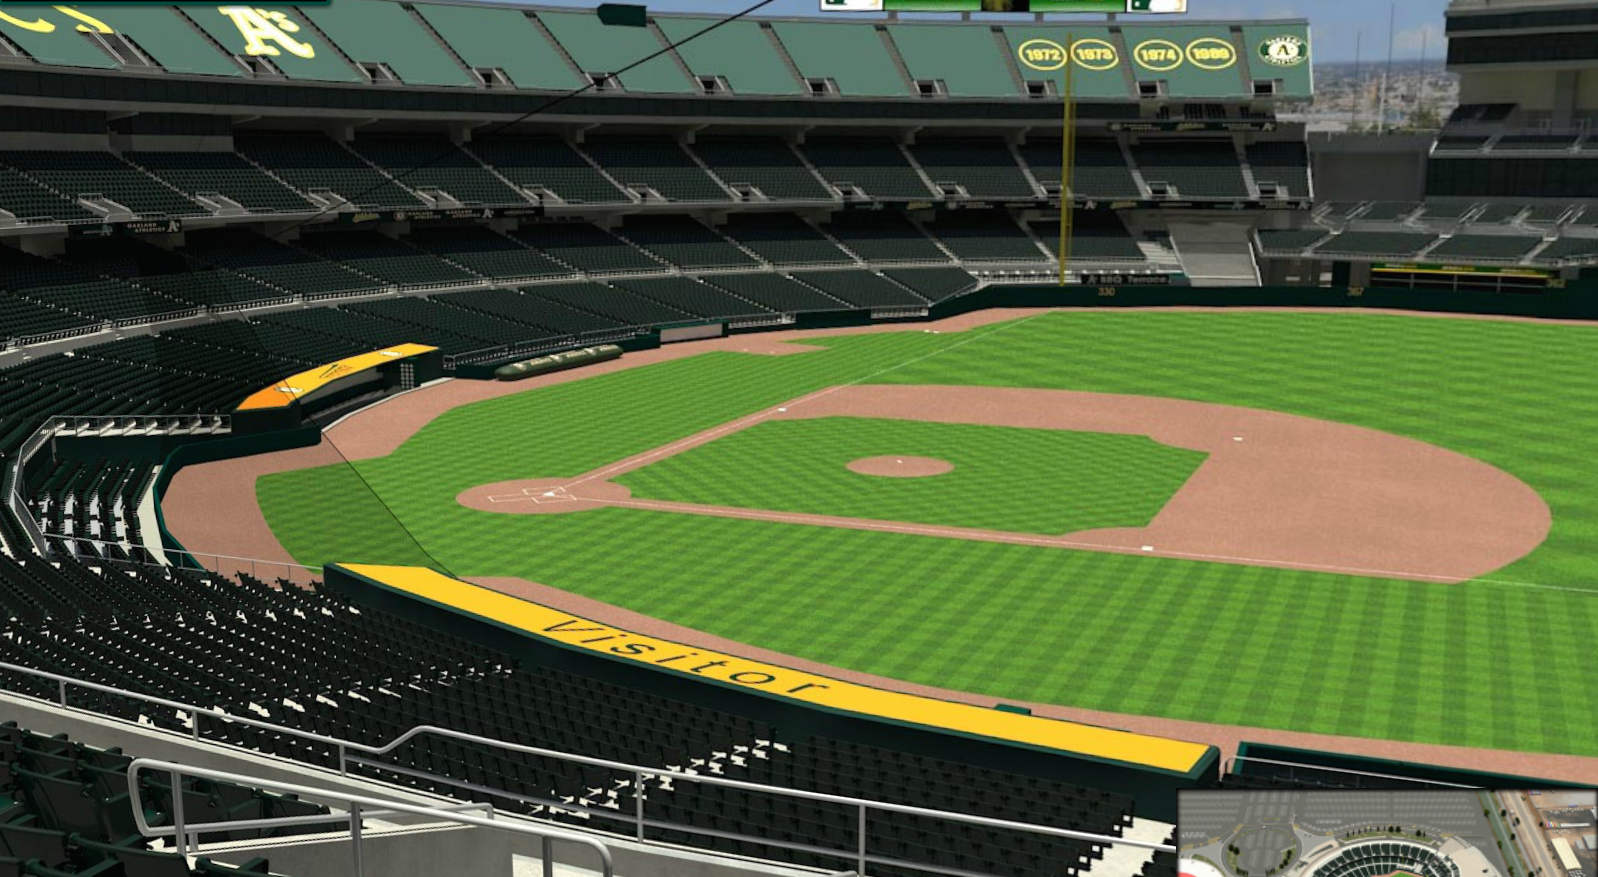 This is the view from the plaintiff's section at O.co  Coliseum. The lawsuit claims that only the pricey VIP seats are protected by safety netting.